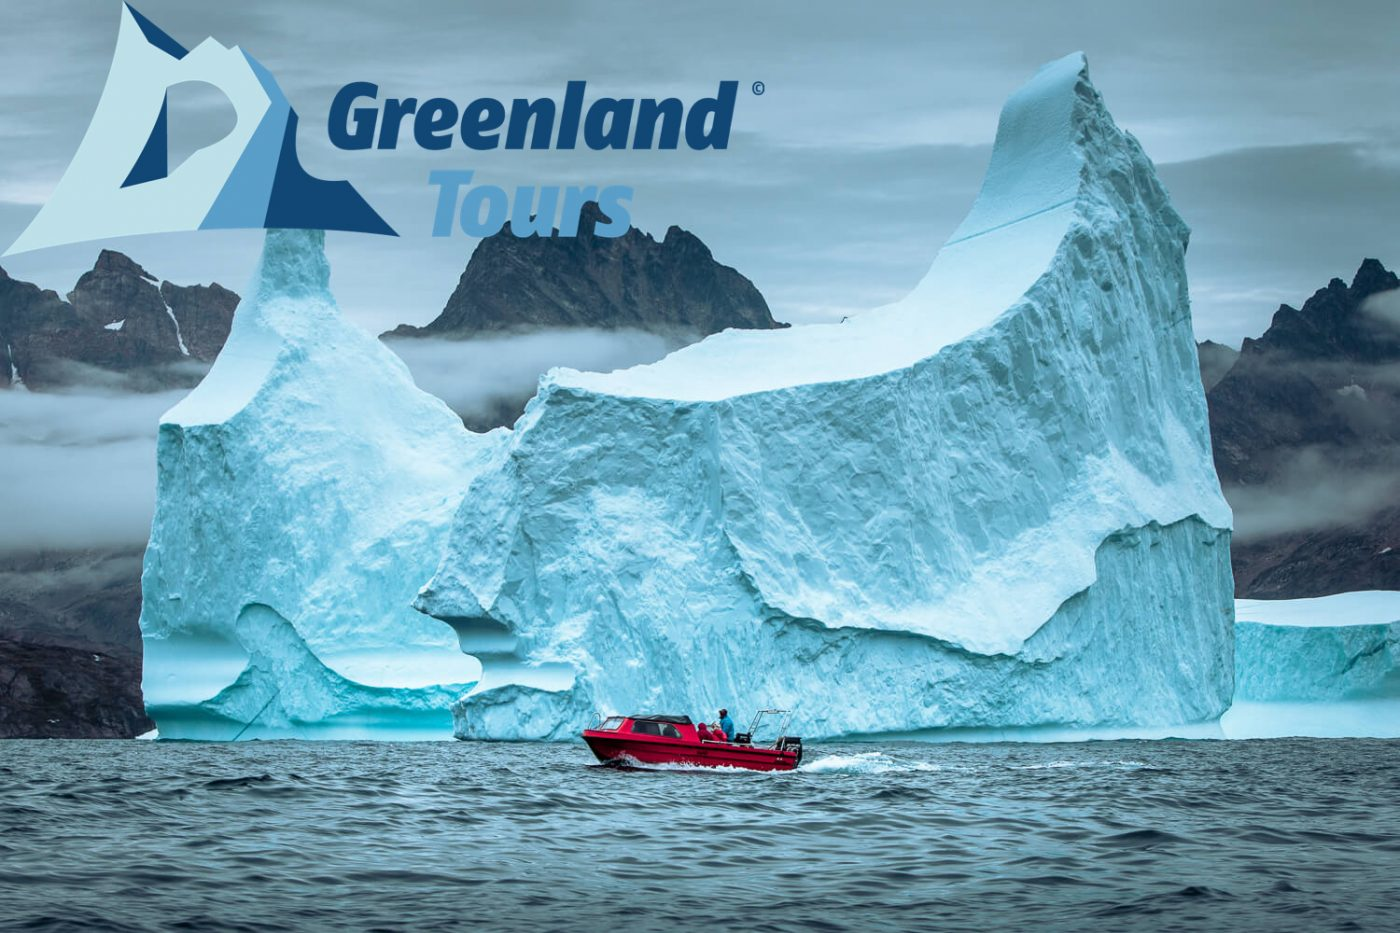 Greenland Tours: Great East